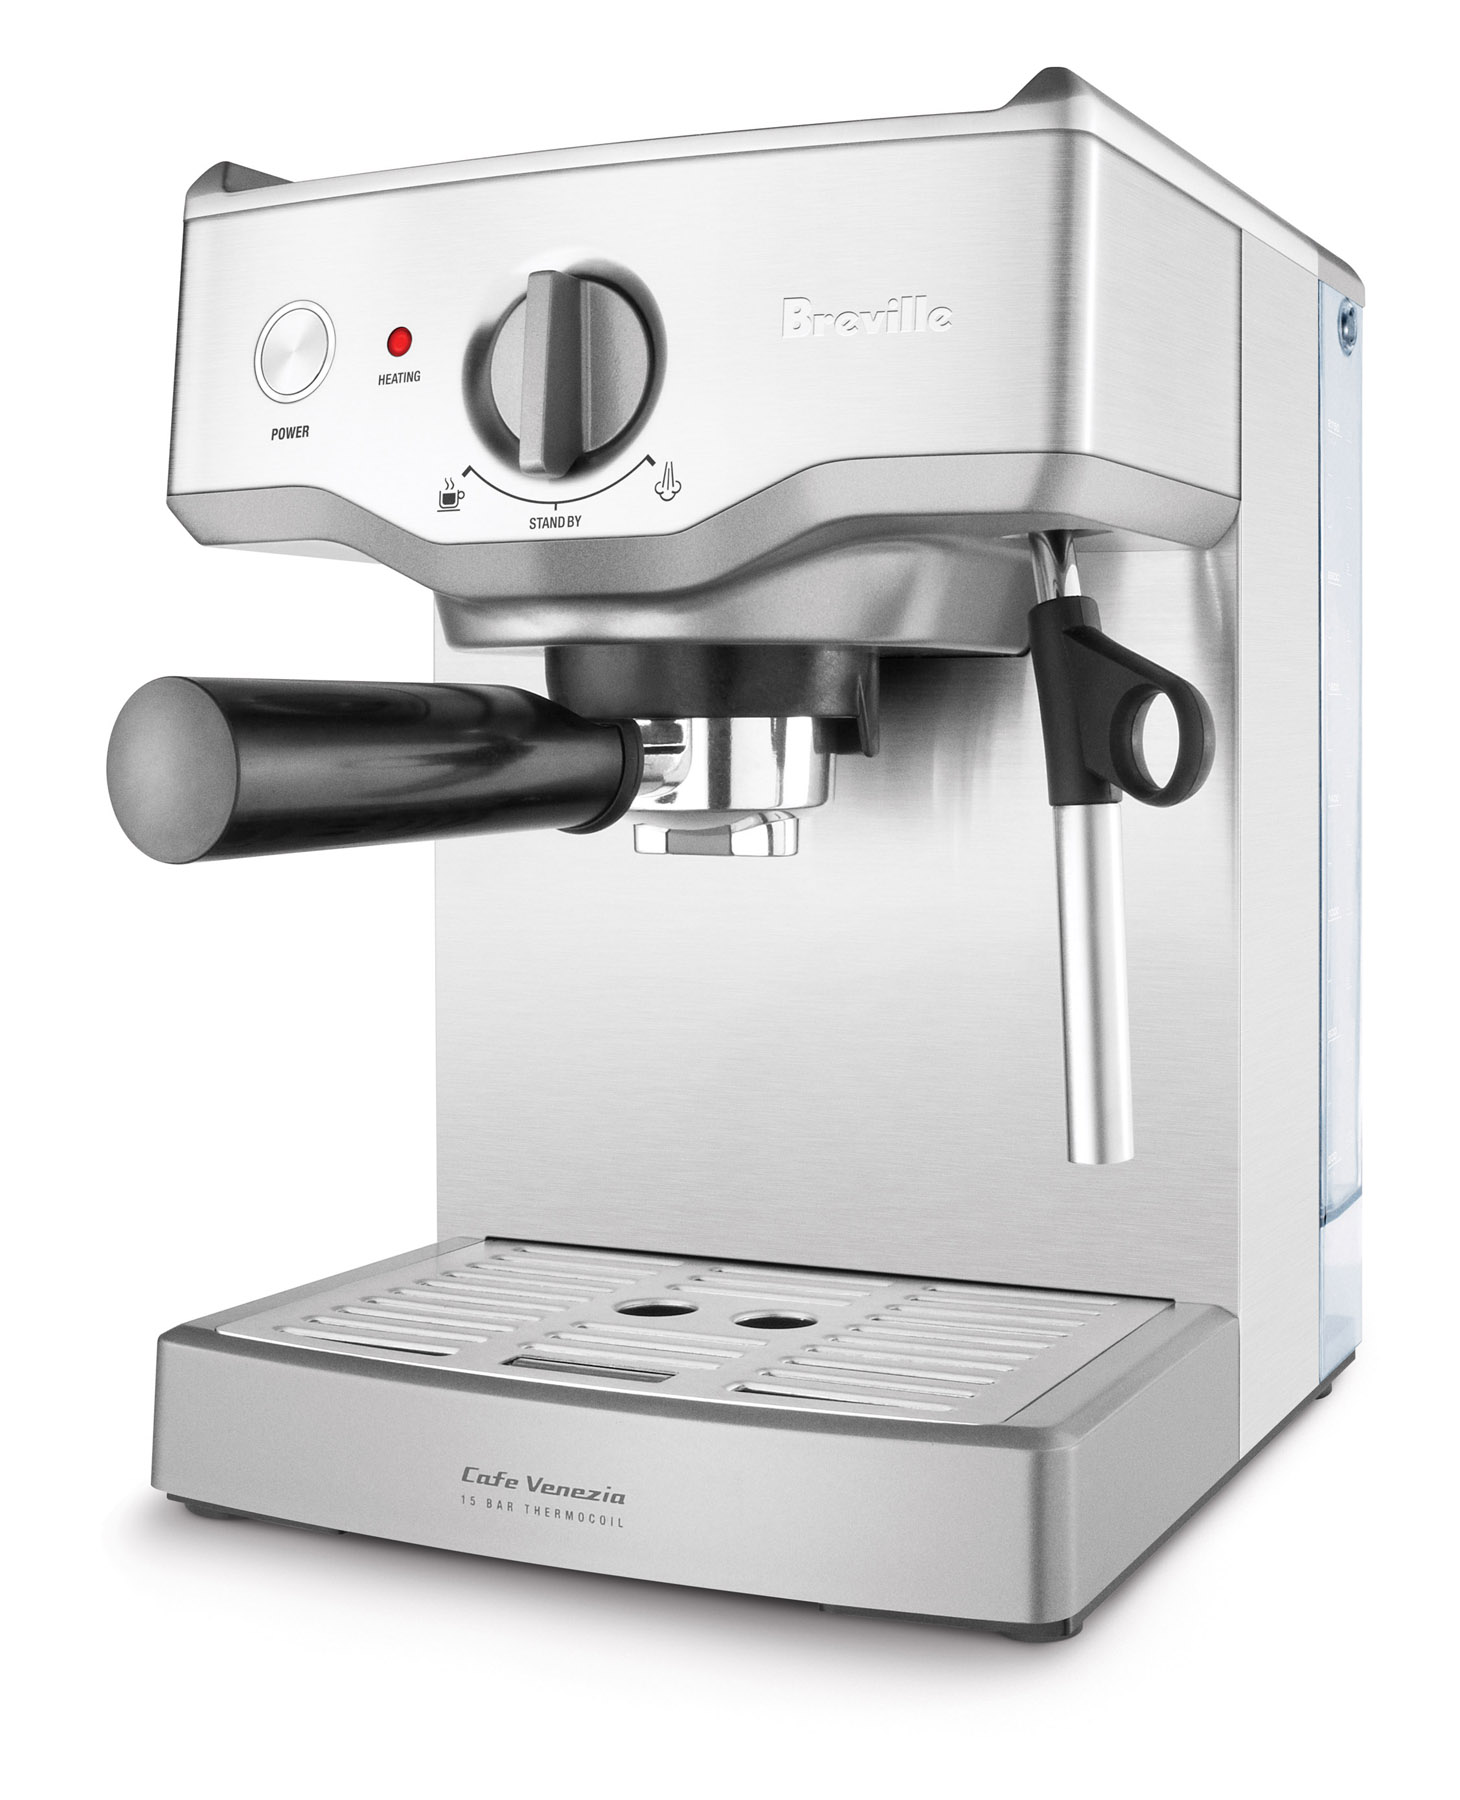 Coffee Maker Breville : Review: Breville s Cafe Venezia Espresso Machine Take It Personel-ly